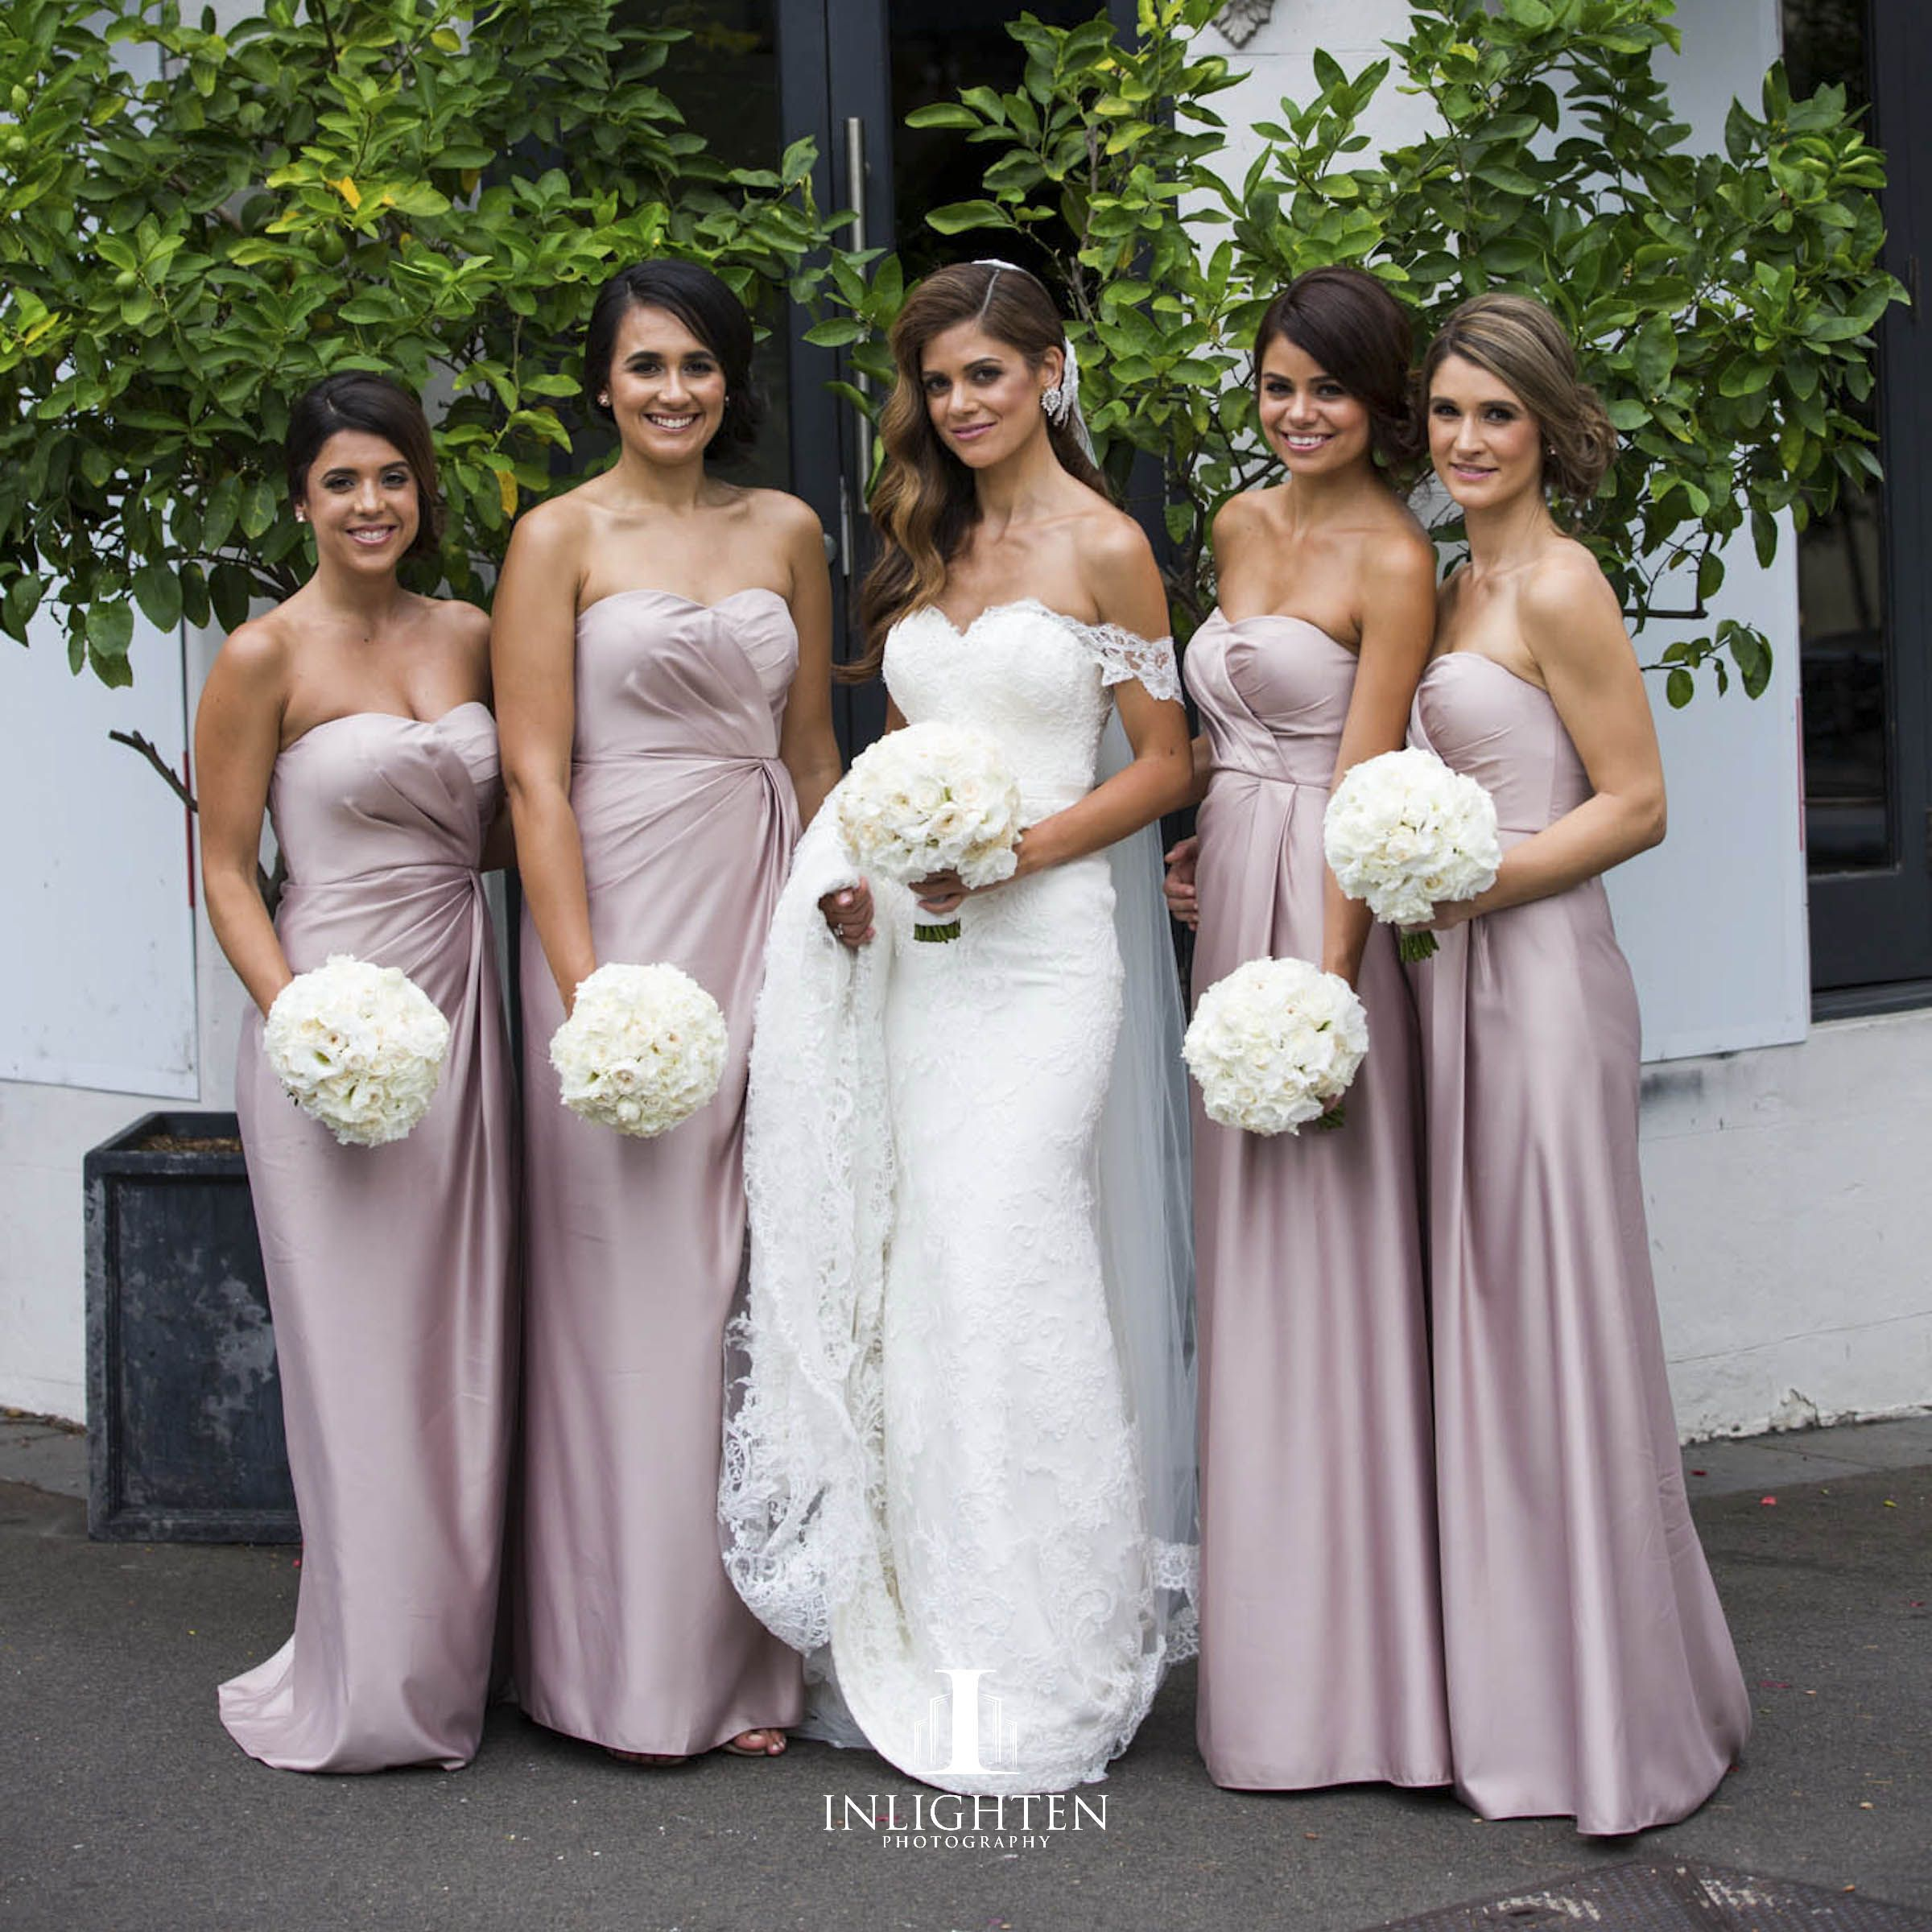 Our gorgeous bride kystal chronis on her wedding day bridesmaids bridesmaid ombrellifo Images